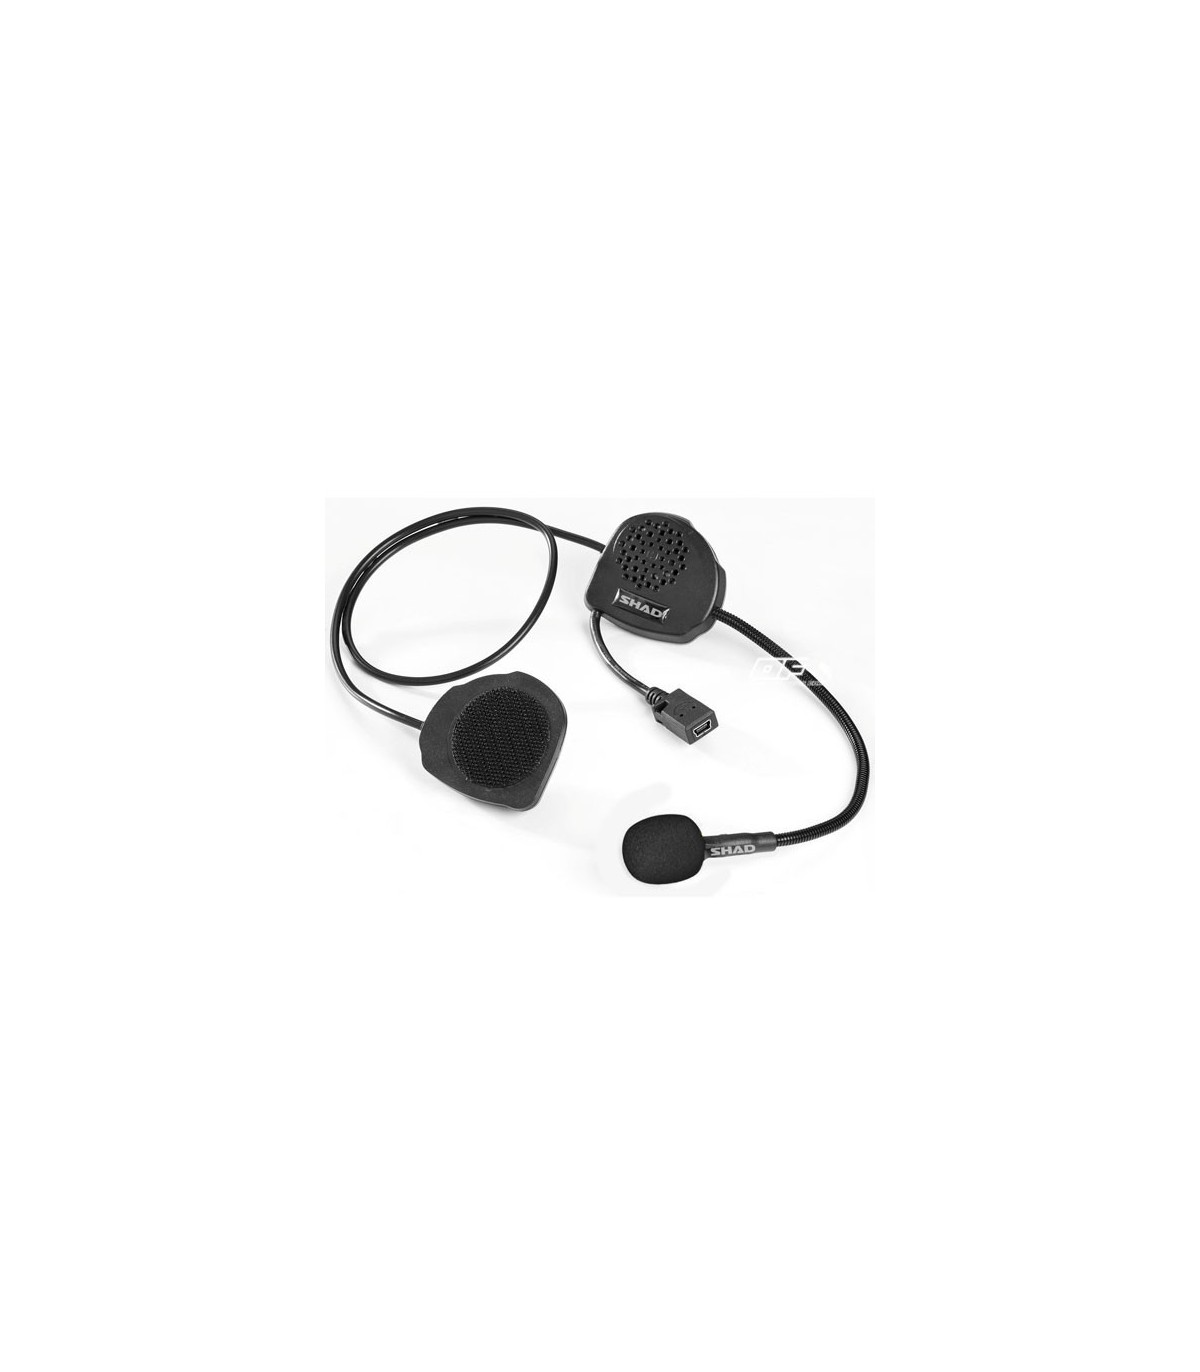 Kit Bluetooth Manos Libres Shad Bc03 Intercomunicador Manos Libres Para Casco Moto